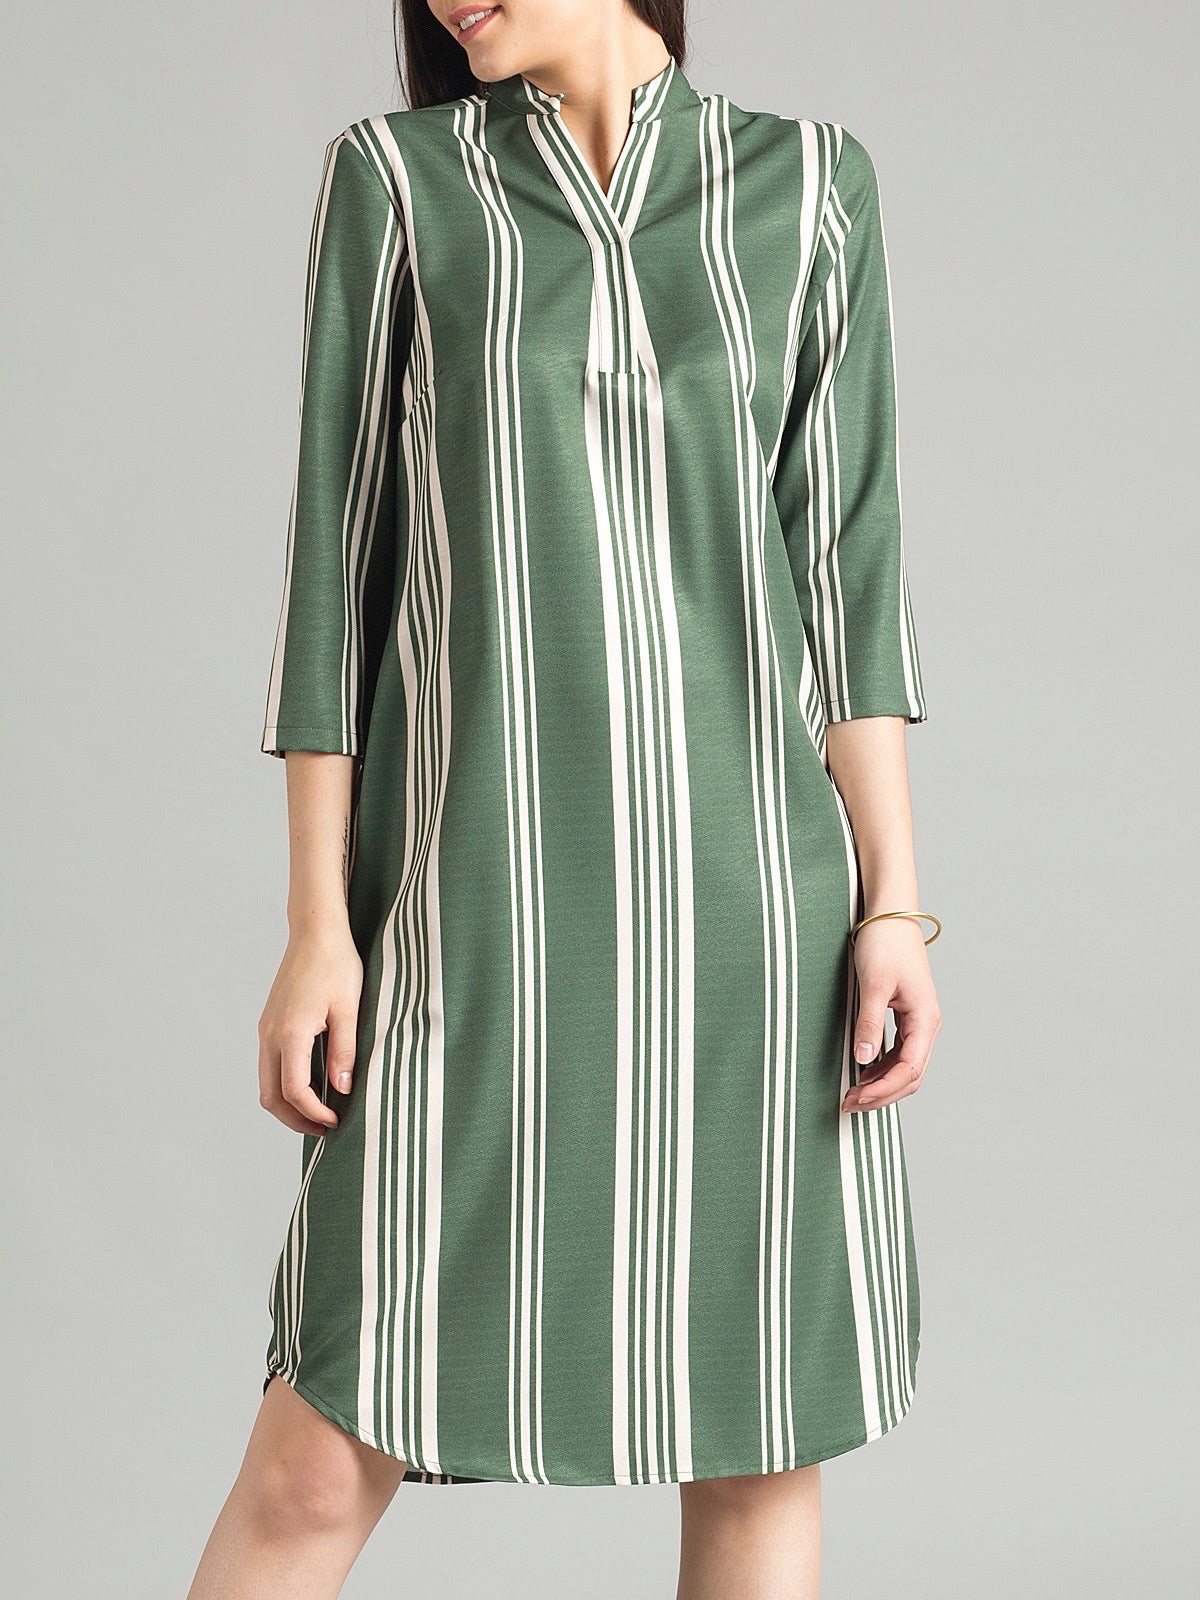 Open Mandarin Collar Printed Stripe Straight Fit Dress - Olive